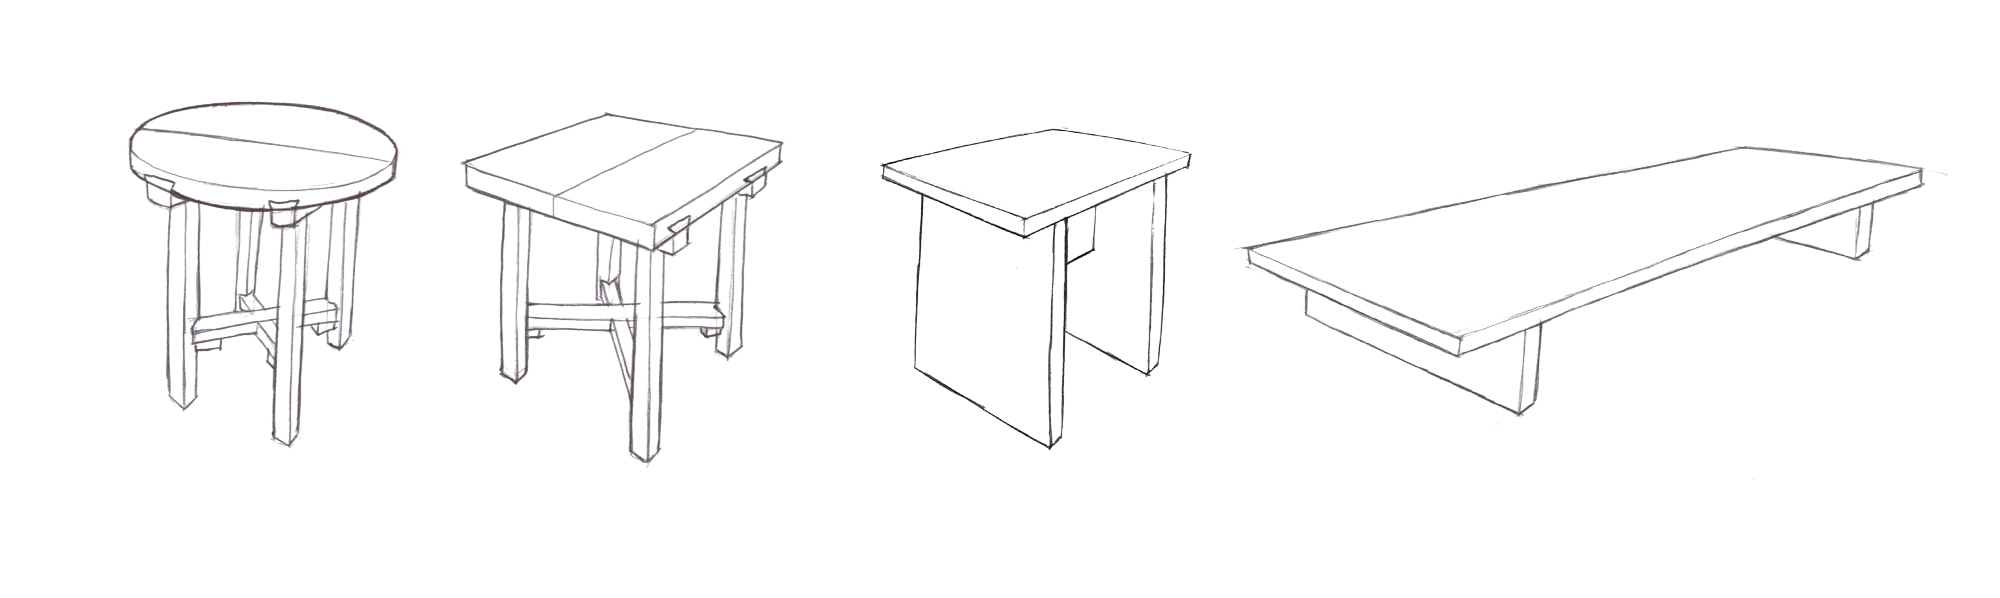 KD-solid-furniture.png